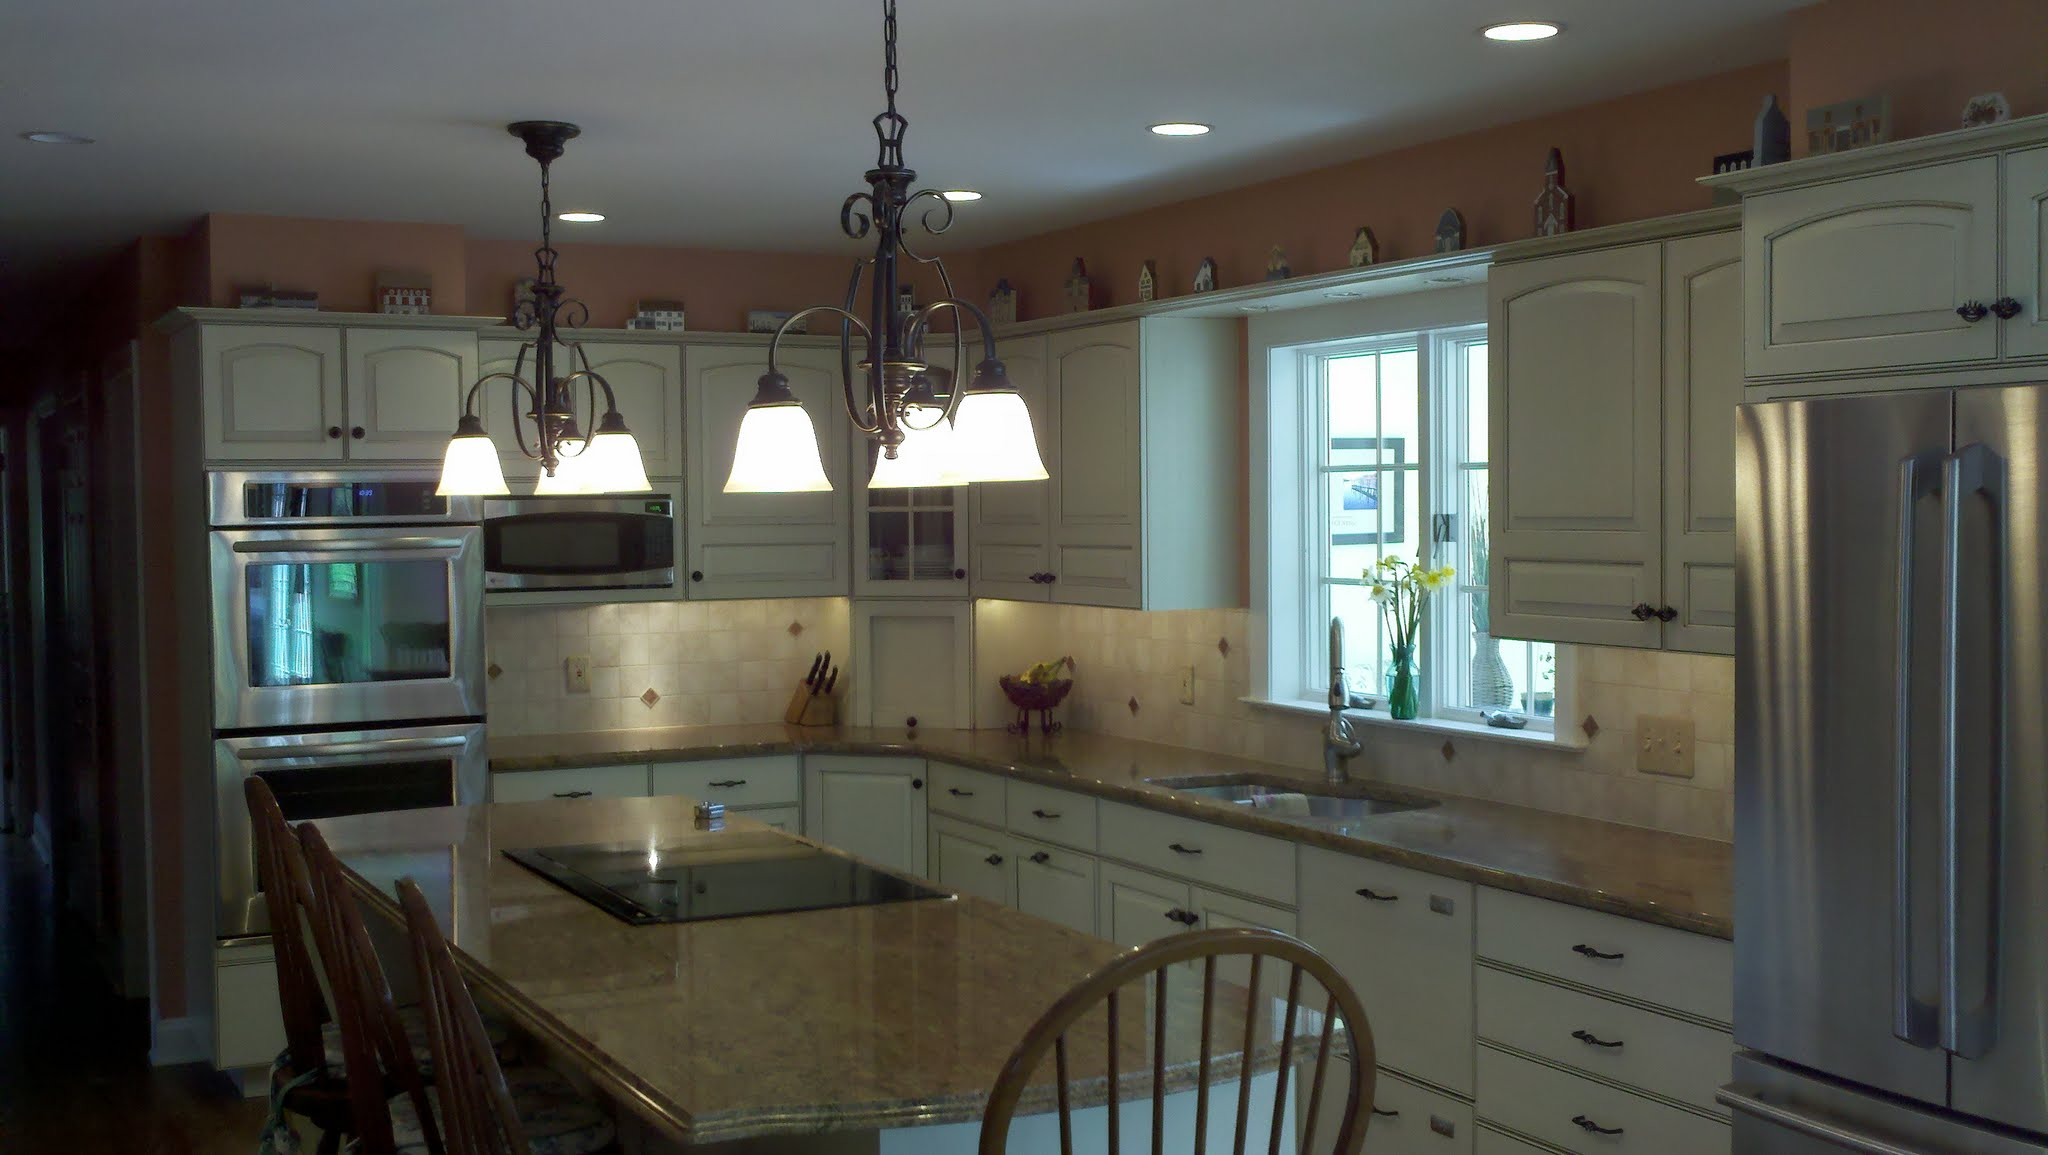 Picasa - Refinish existing kitchen cabinets, new appliaces, granite counters and